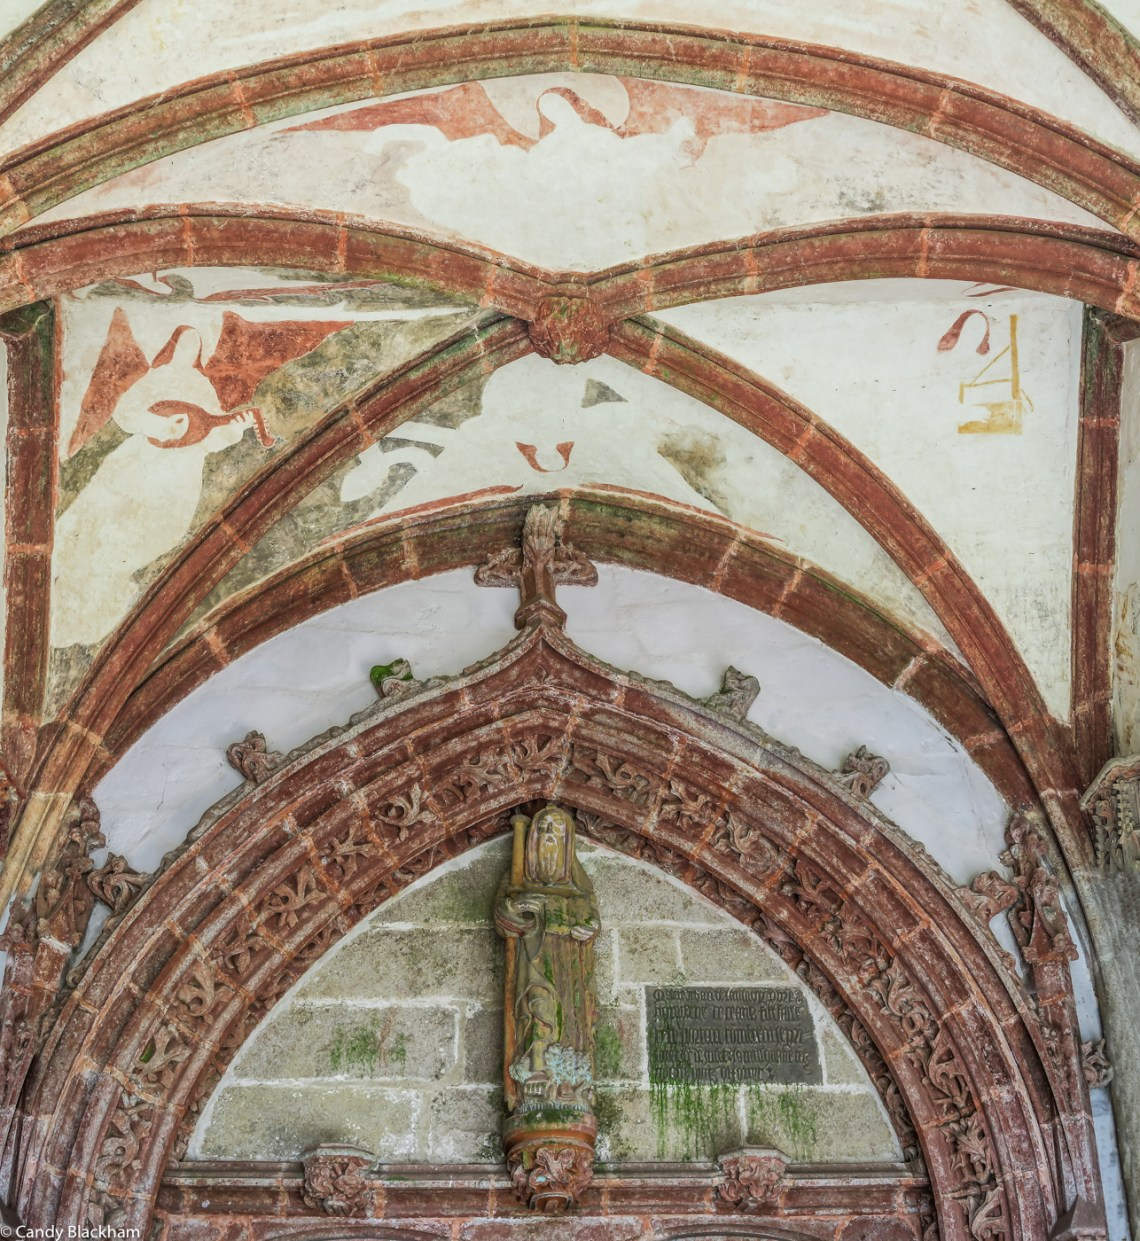 The ceiling in the South Porch, with a figure of St Herbot over the door